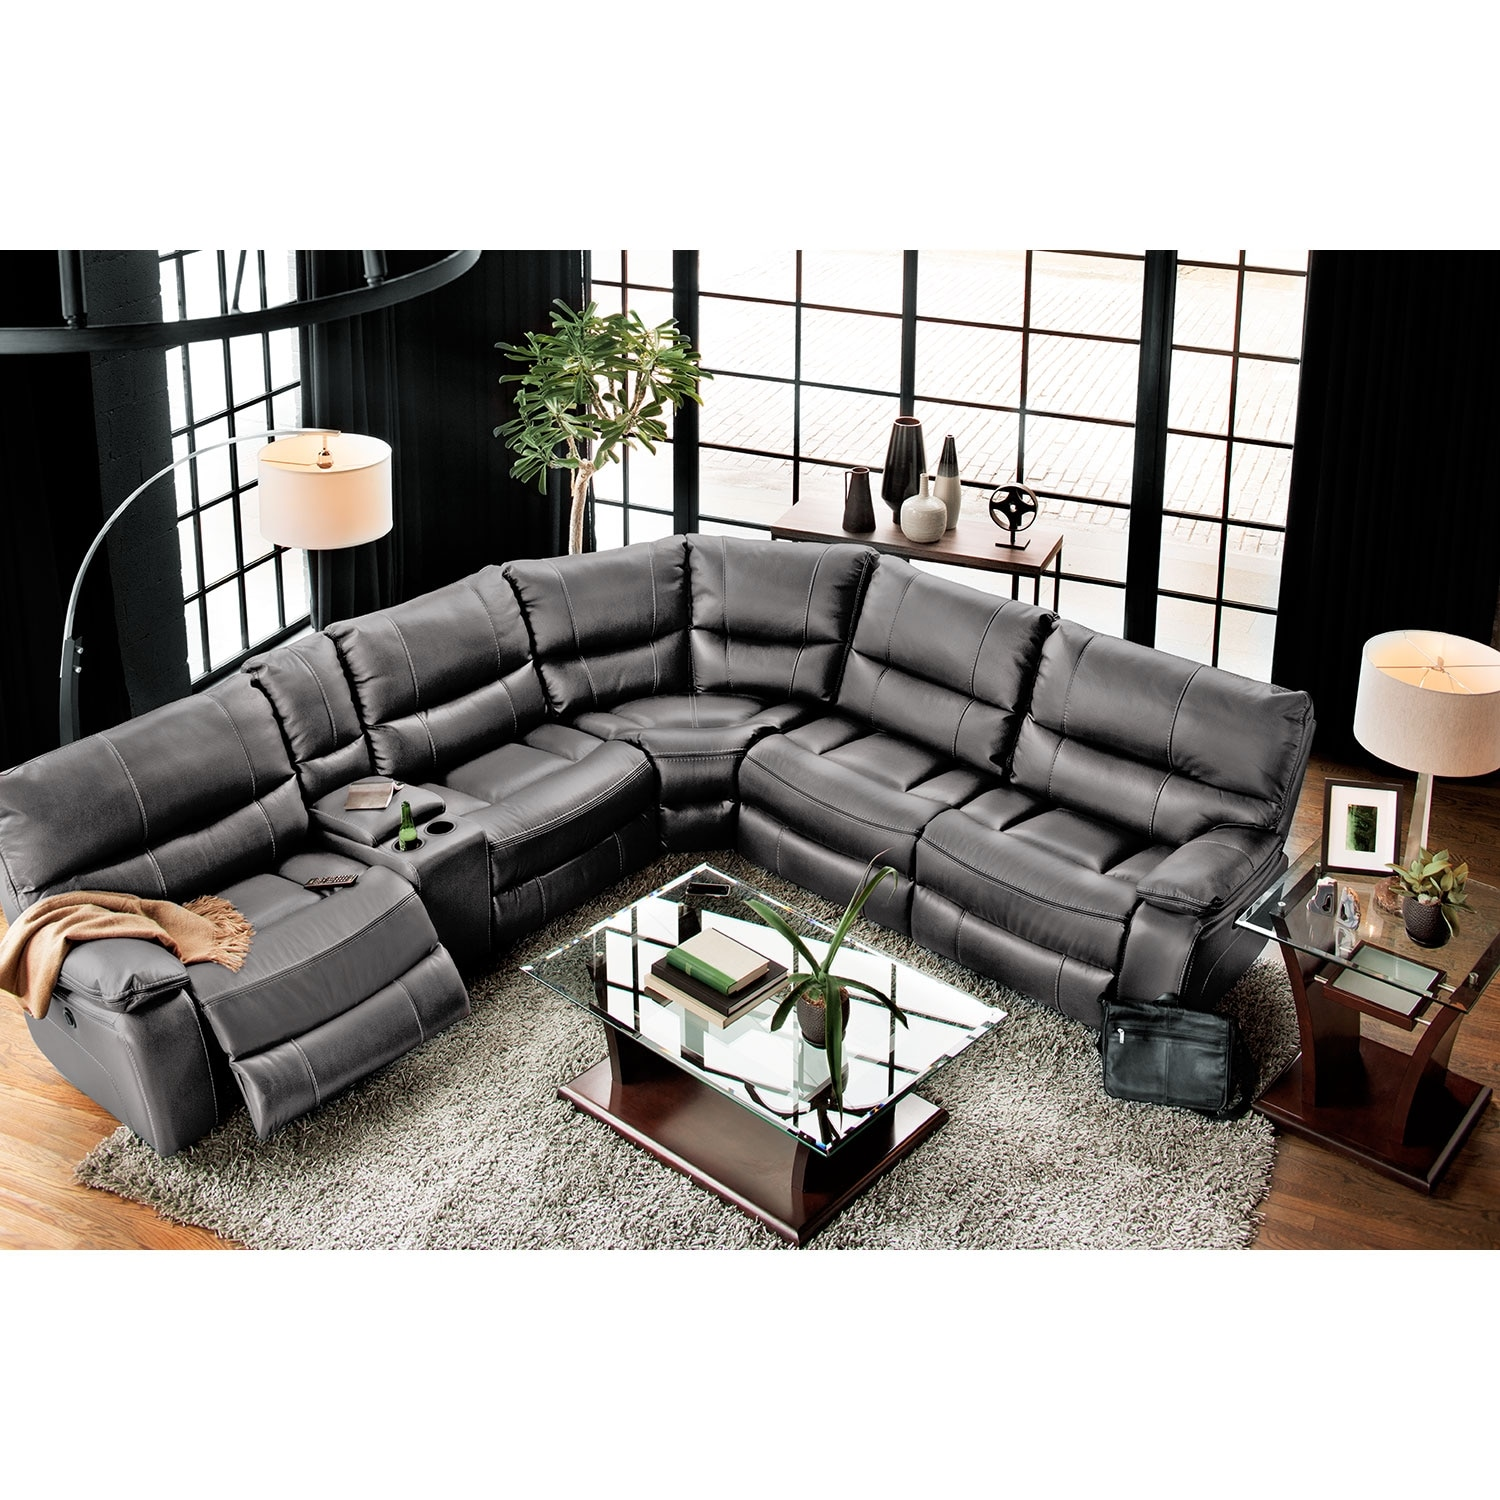 Orlando 6 Piece Power Reclining Sectional W 1 Stationary Chair Gray Value City Furniture